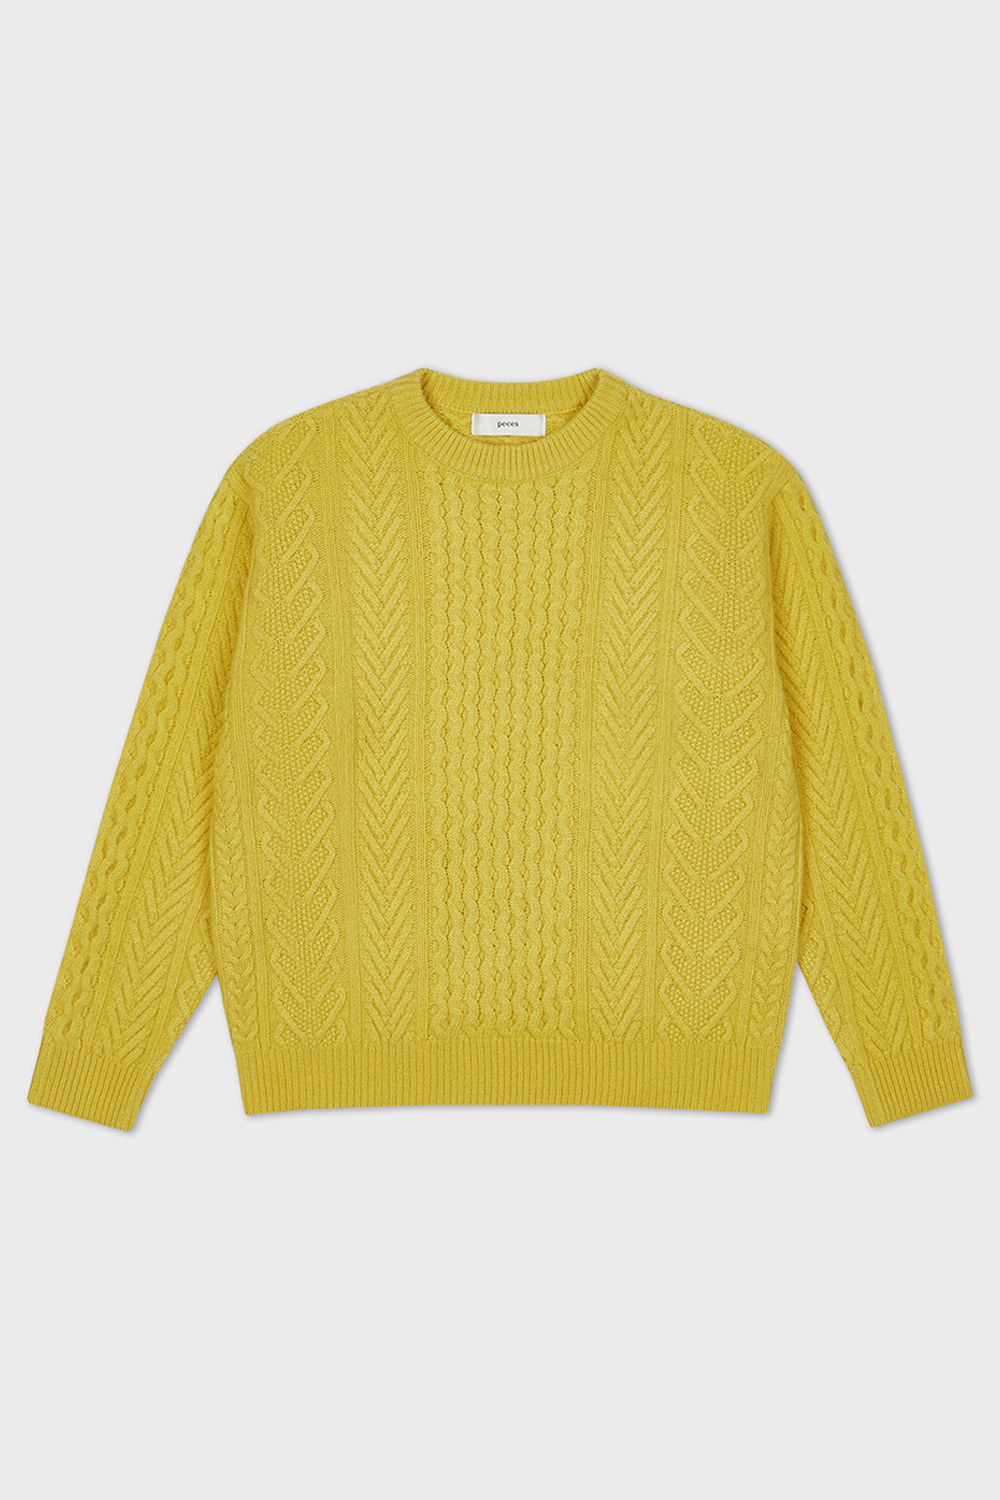 WOOL CABLE KNIT (YELLOW)